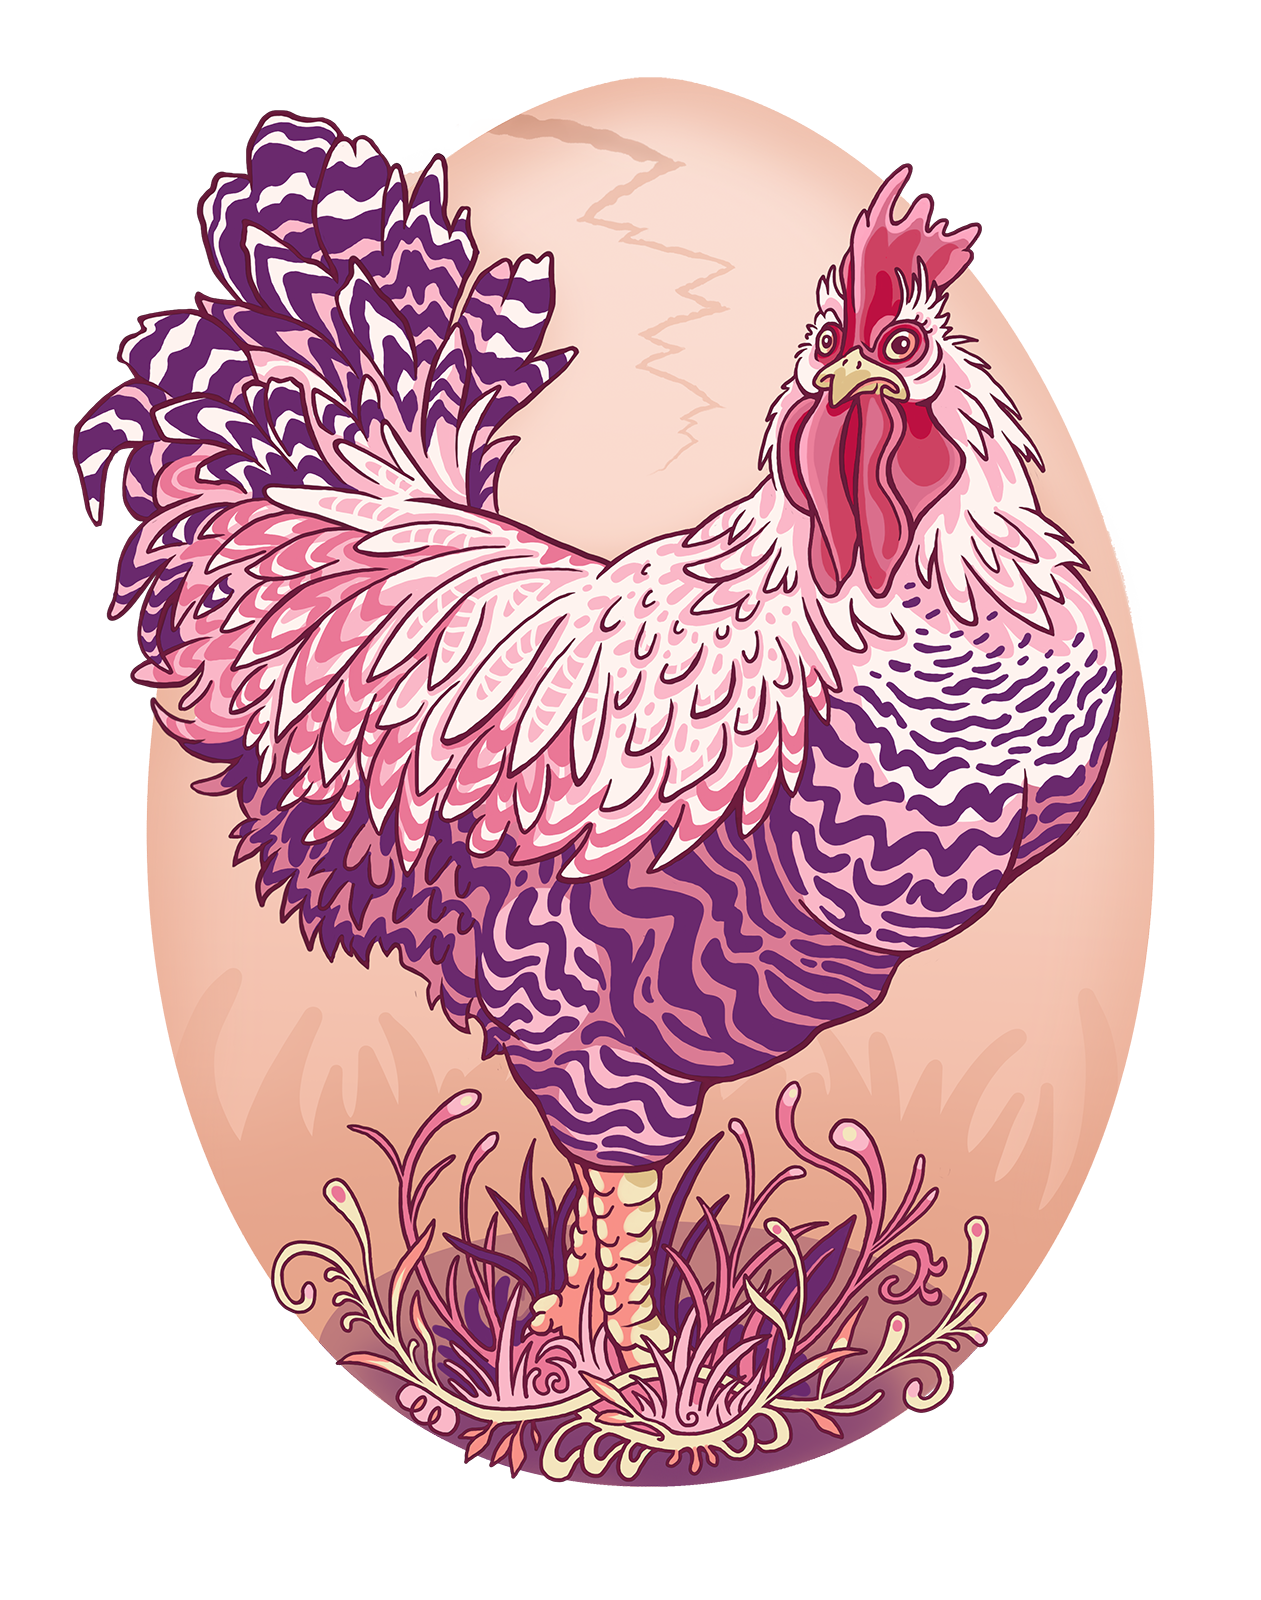 Bold Chicken Rooster Egg Bed and Breakfast Cartoon Illustration Logo Graphic by Jessica Laine Morris